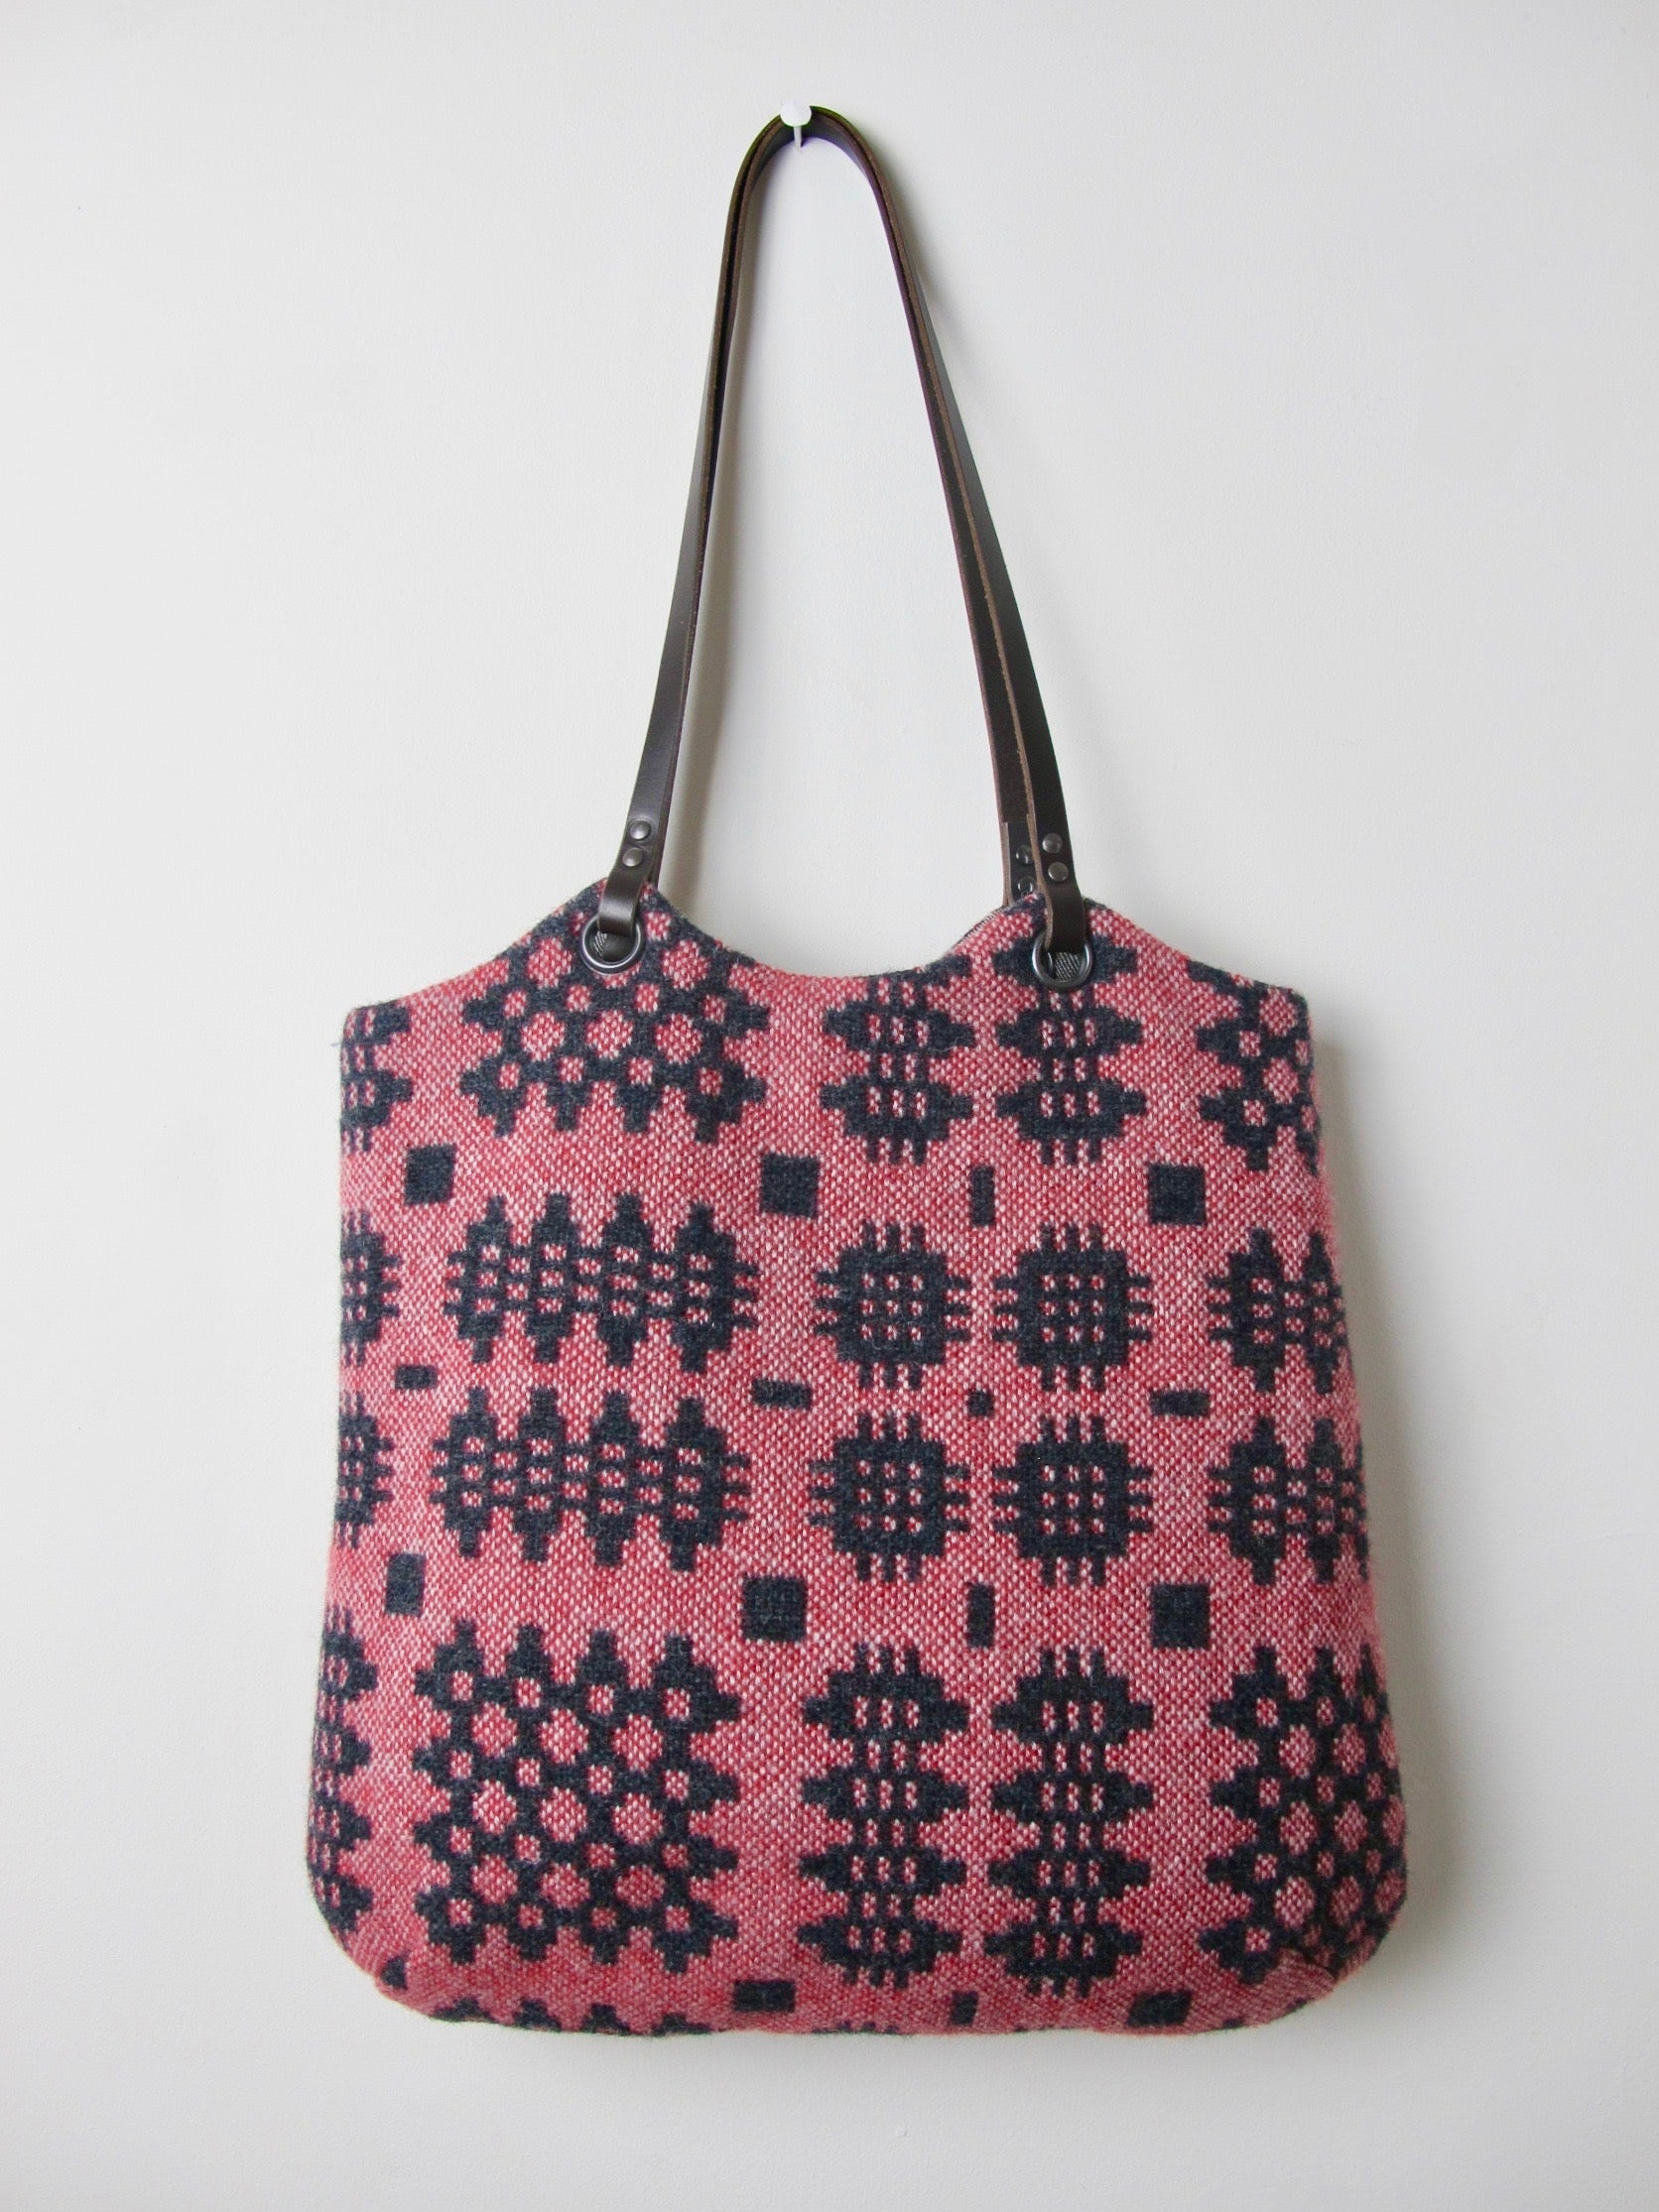 Tapestry Tote - Graphite & Berry Red II